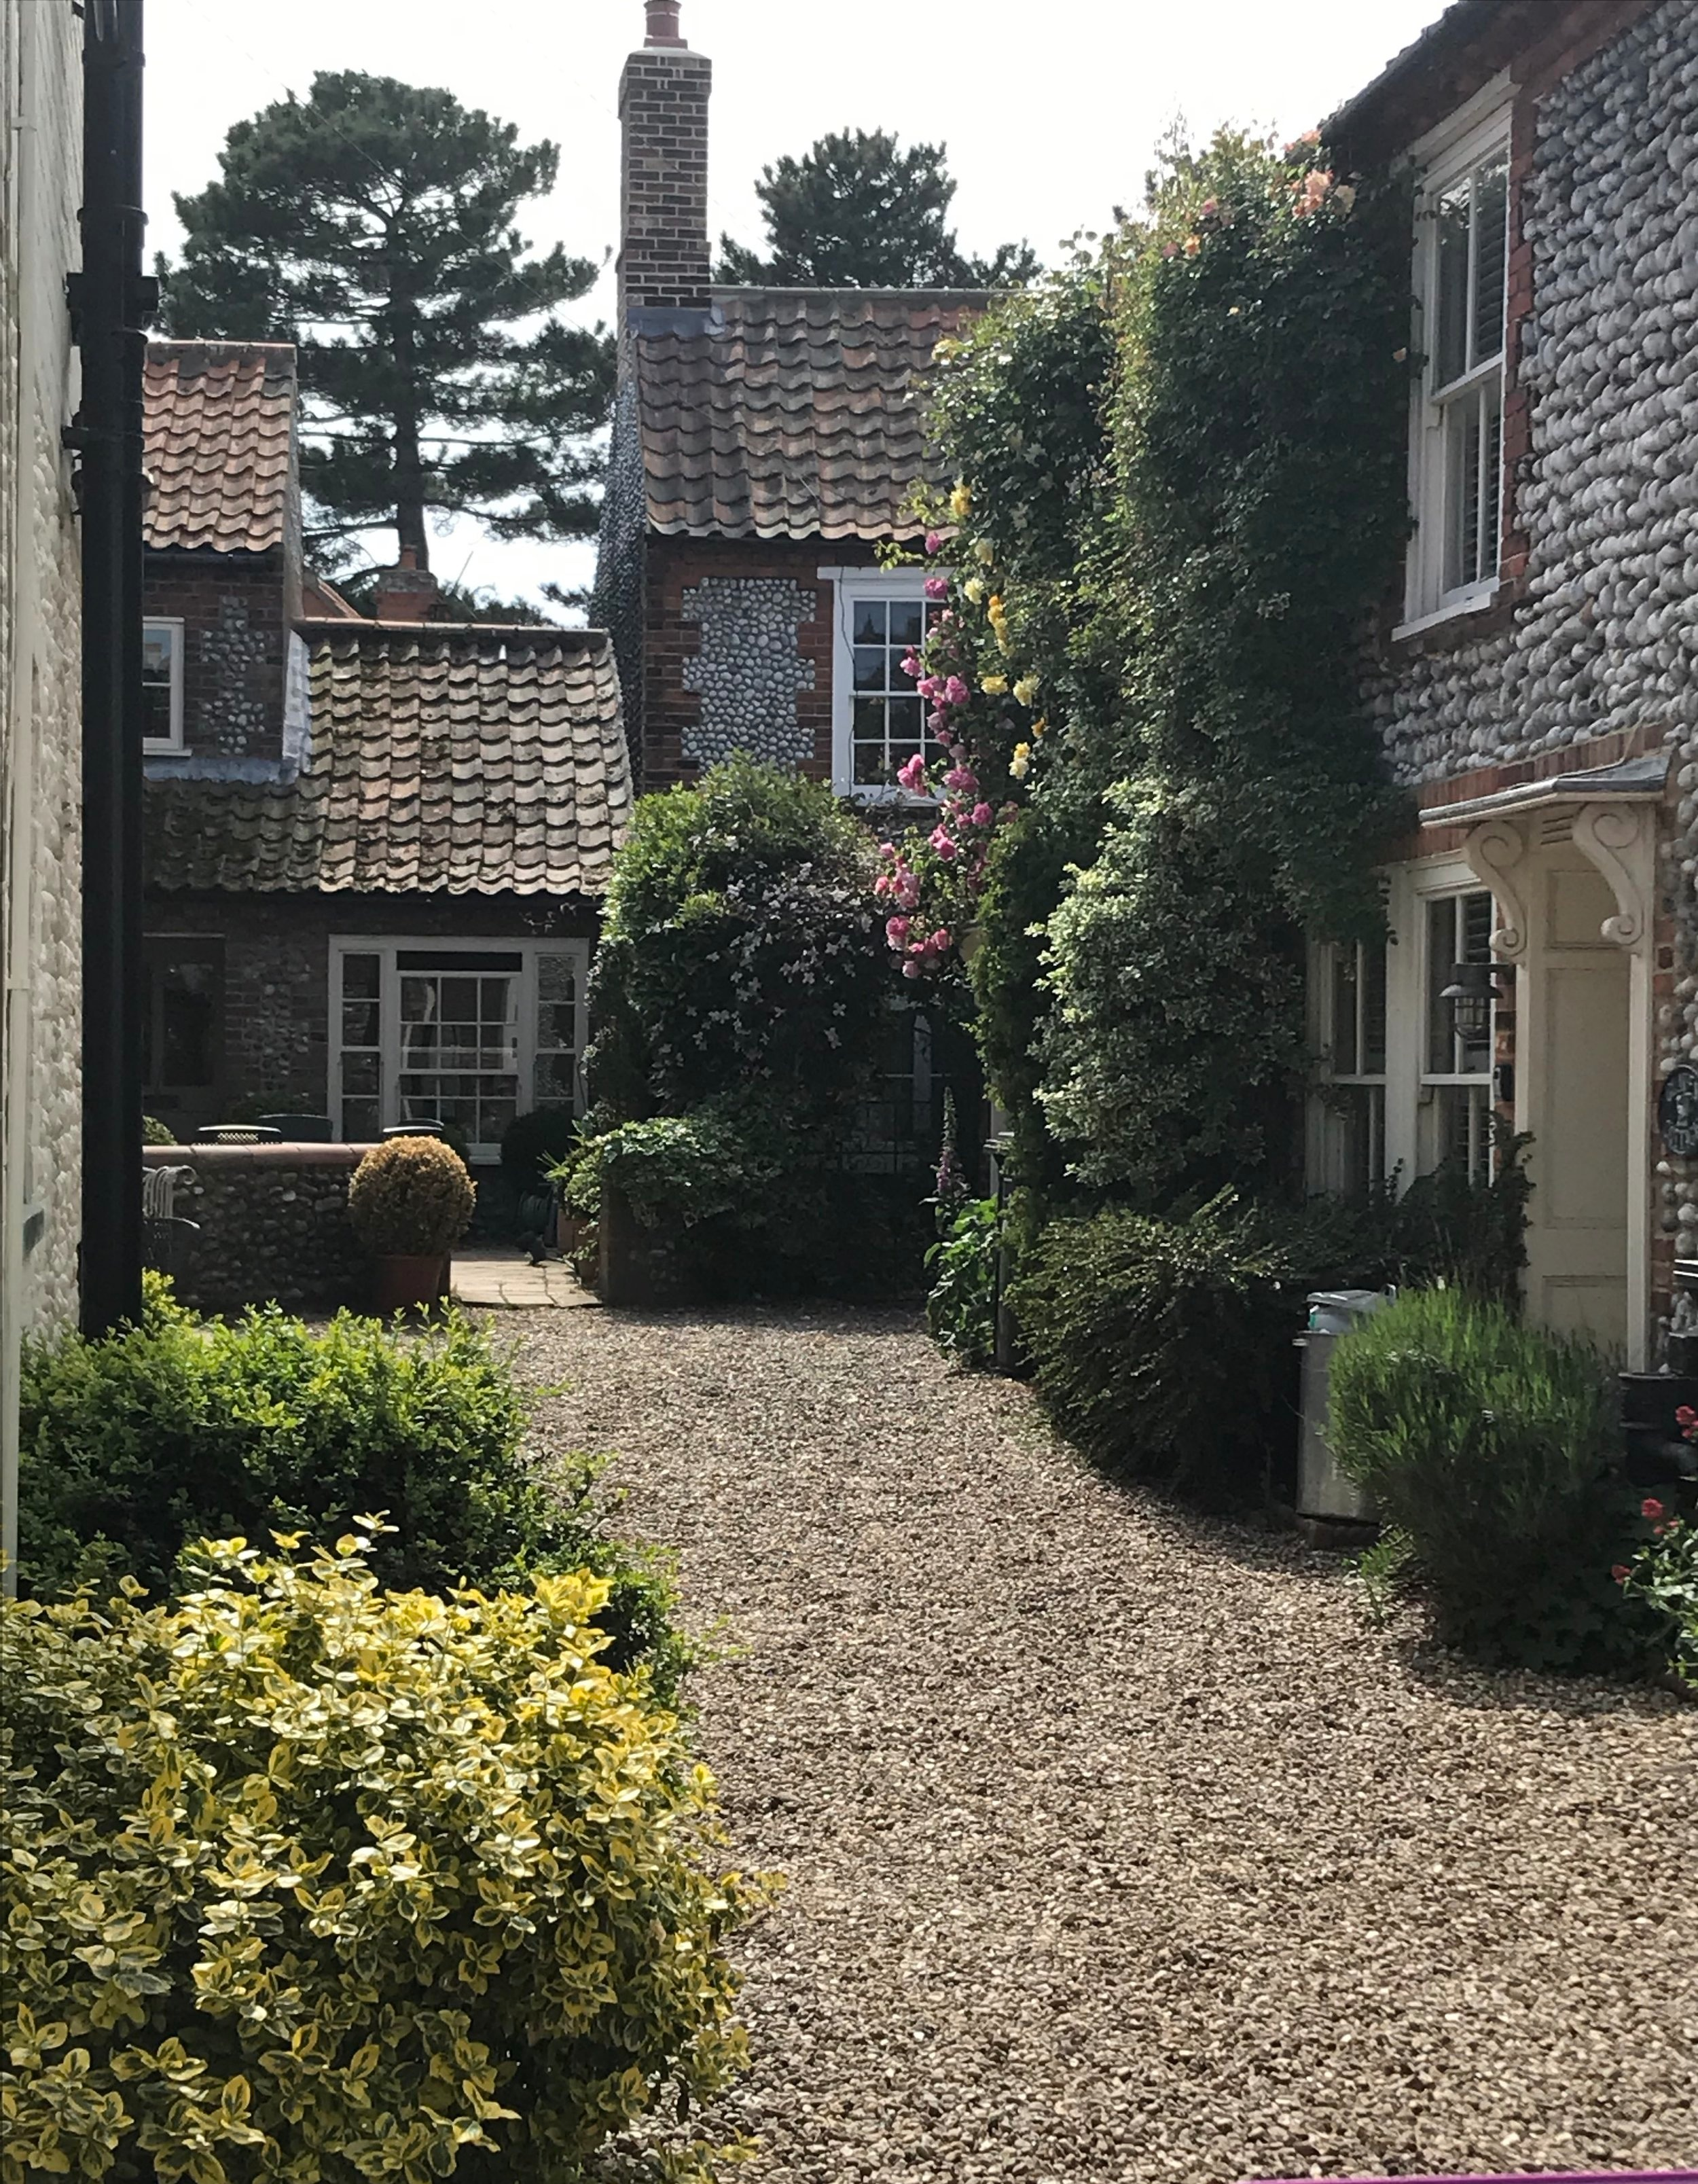 Flint walls are a feature of many of the houses in the lovely villages we visited